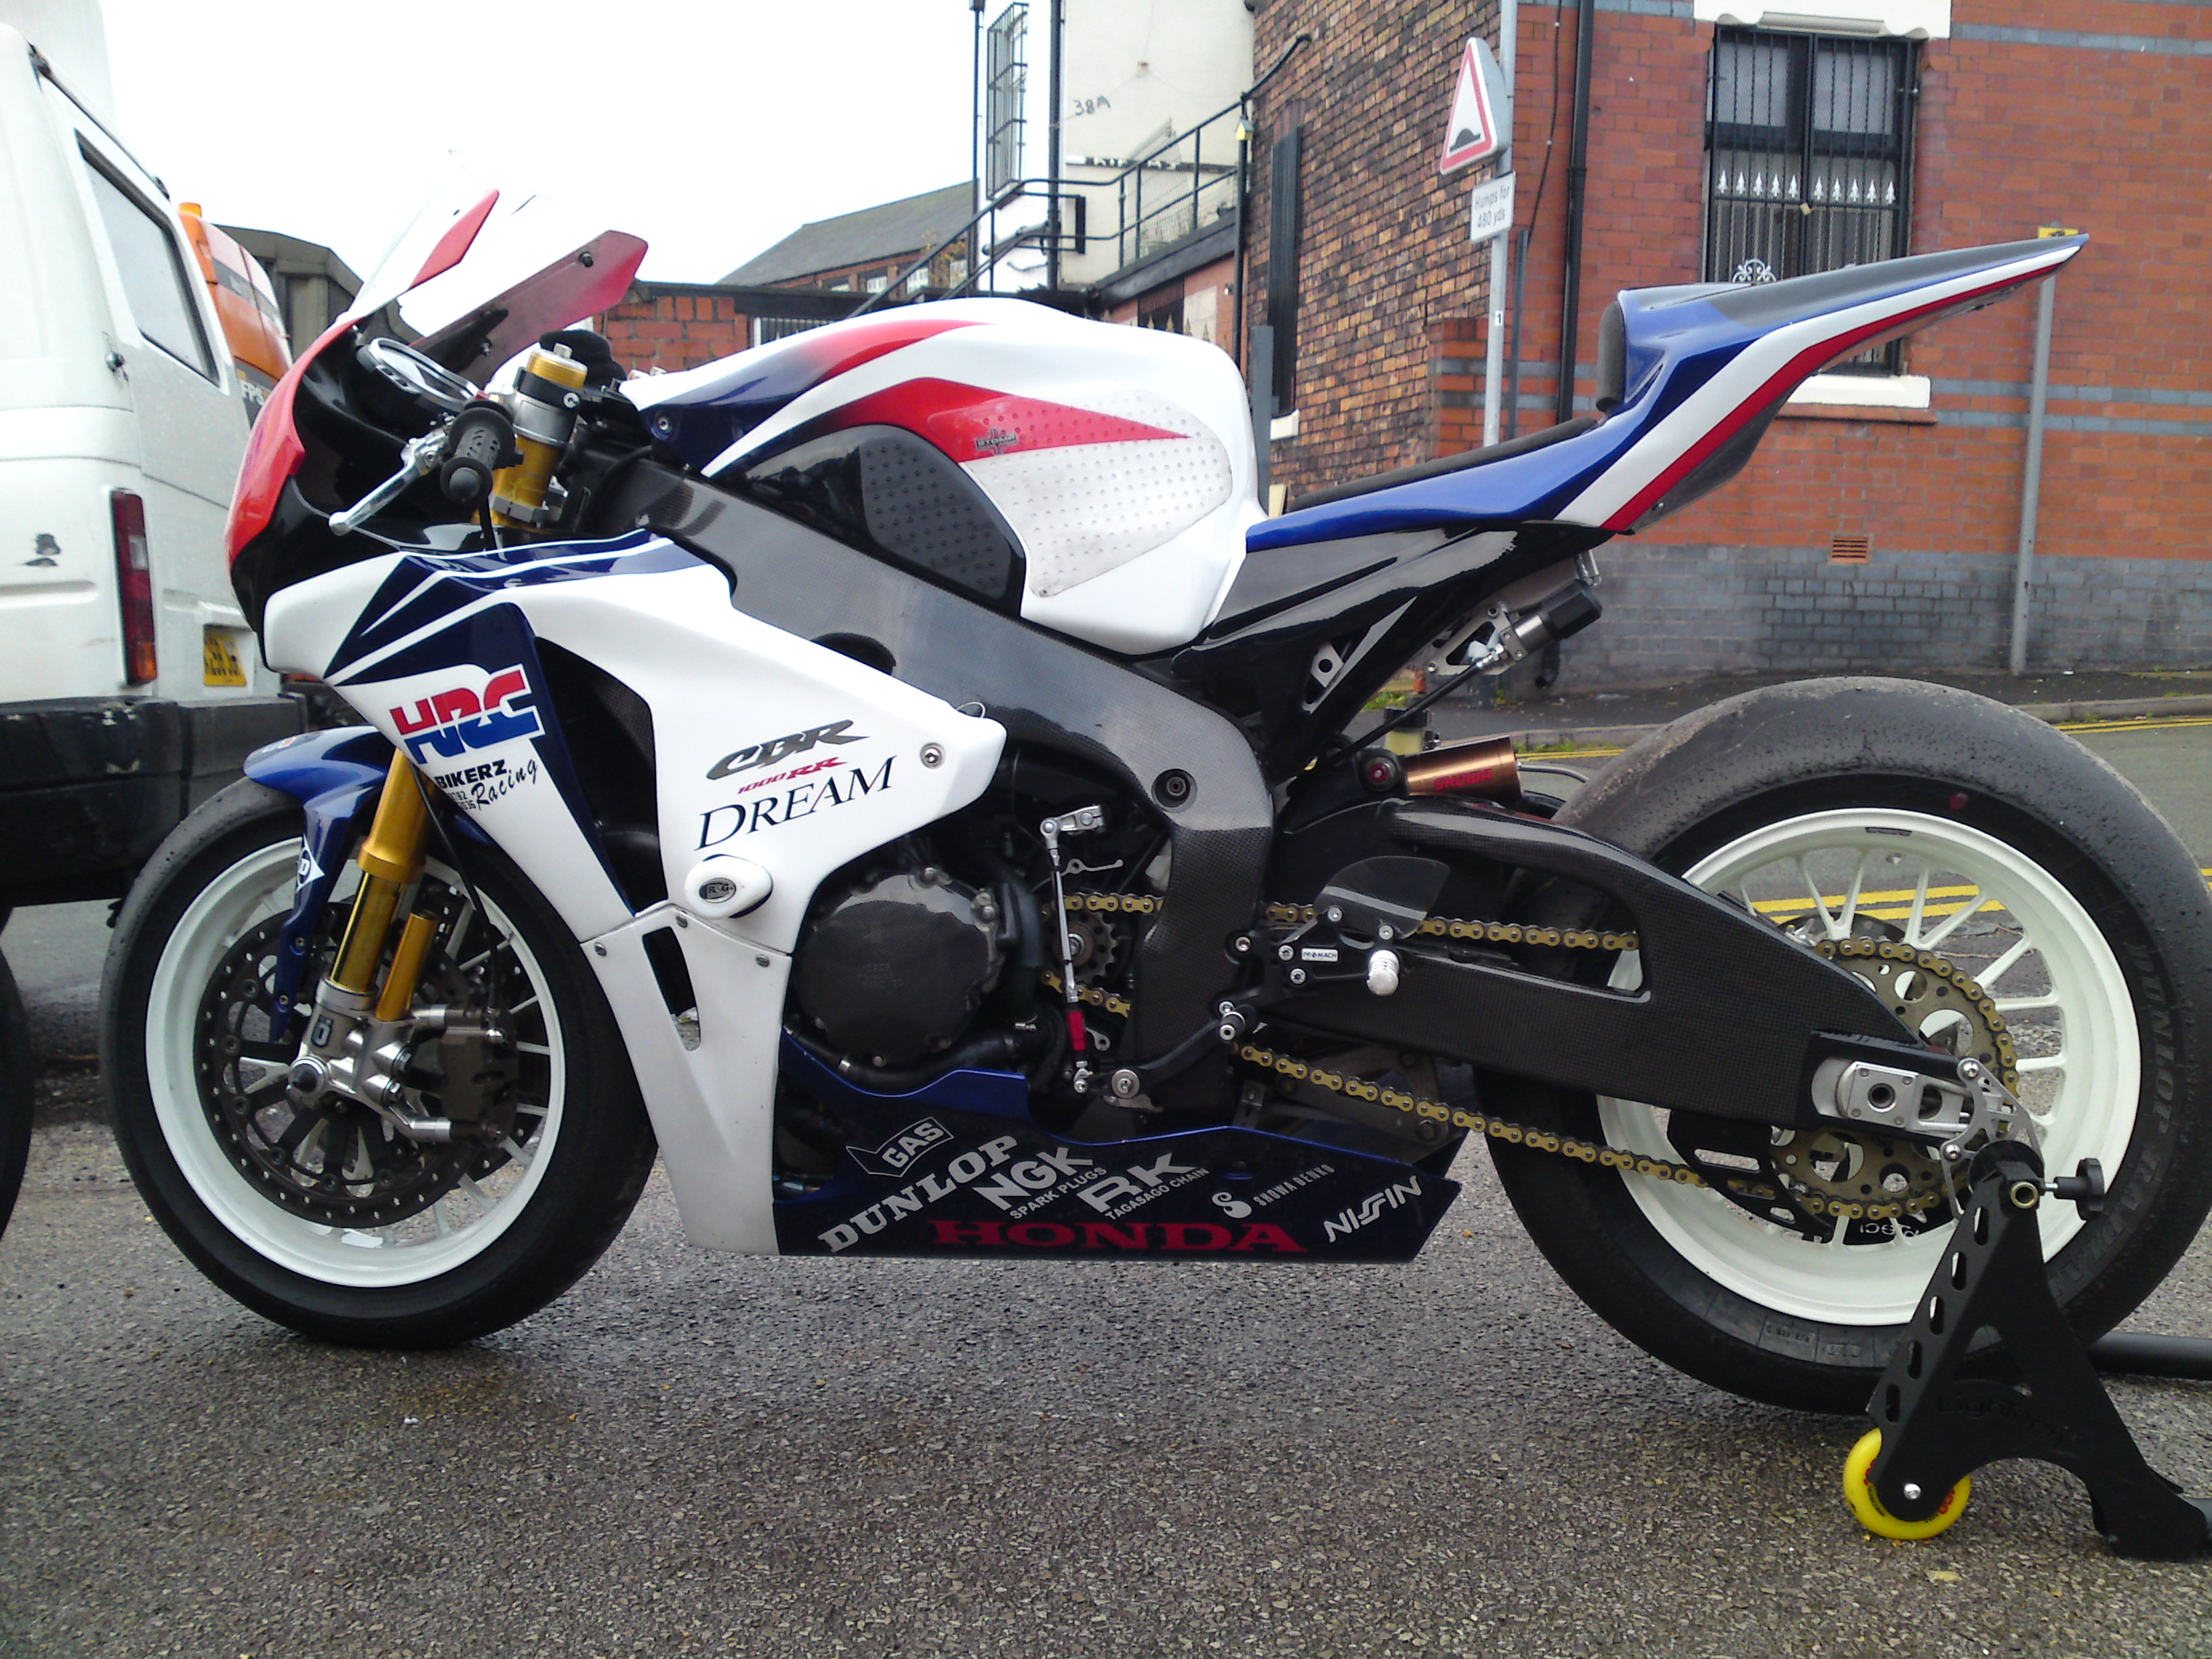 2009 Fireblade built from scratch